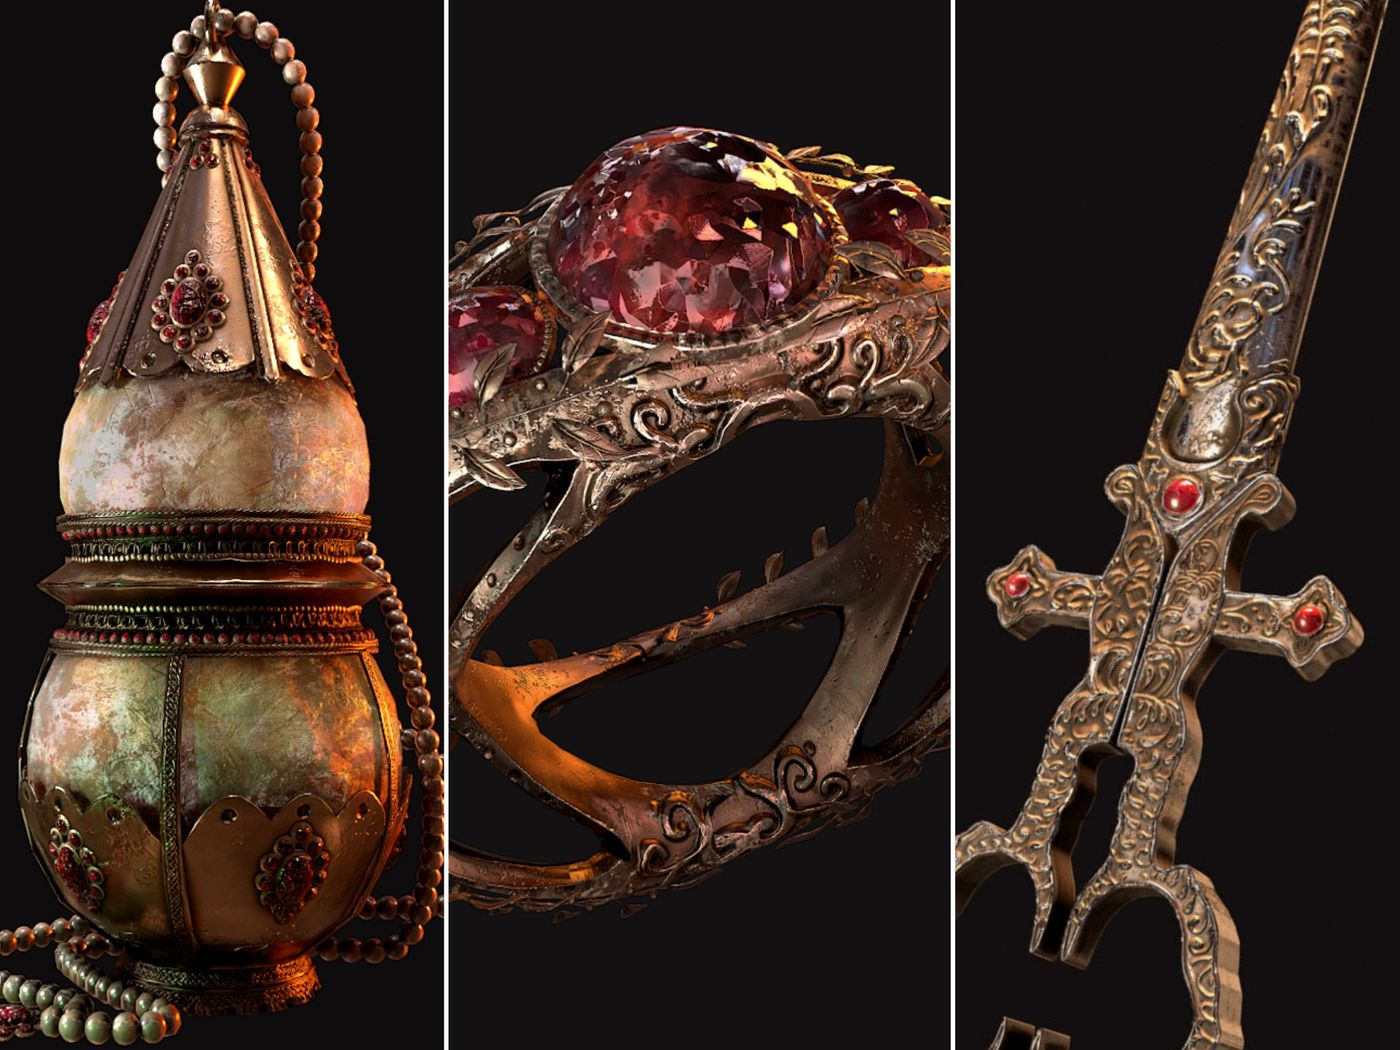 Holy Artifacts | Prop creation by Noor Vullinghs